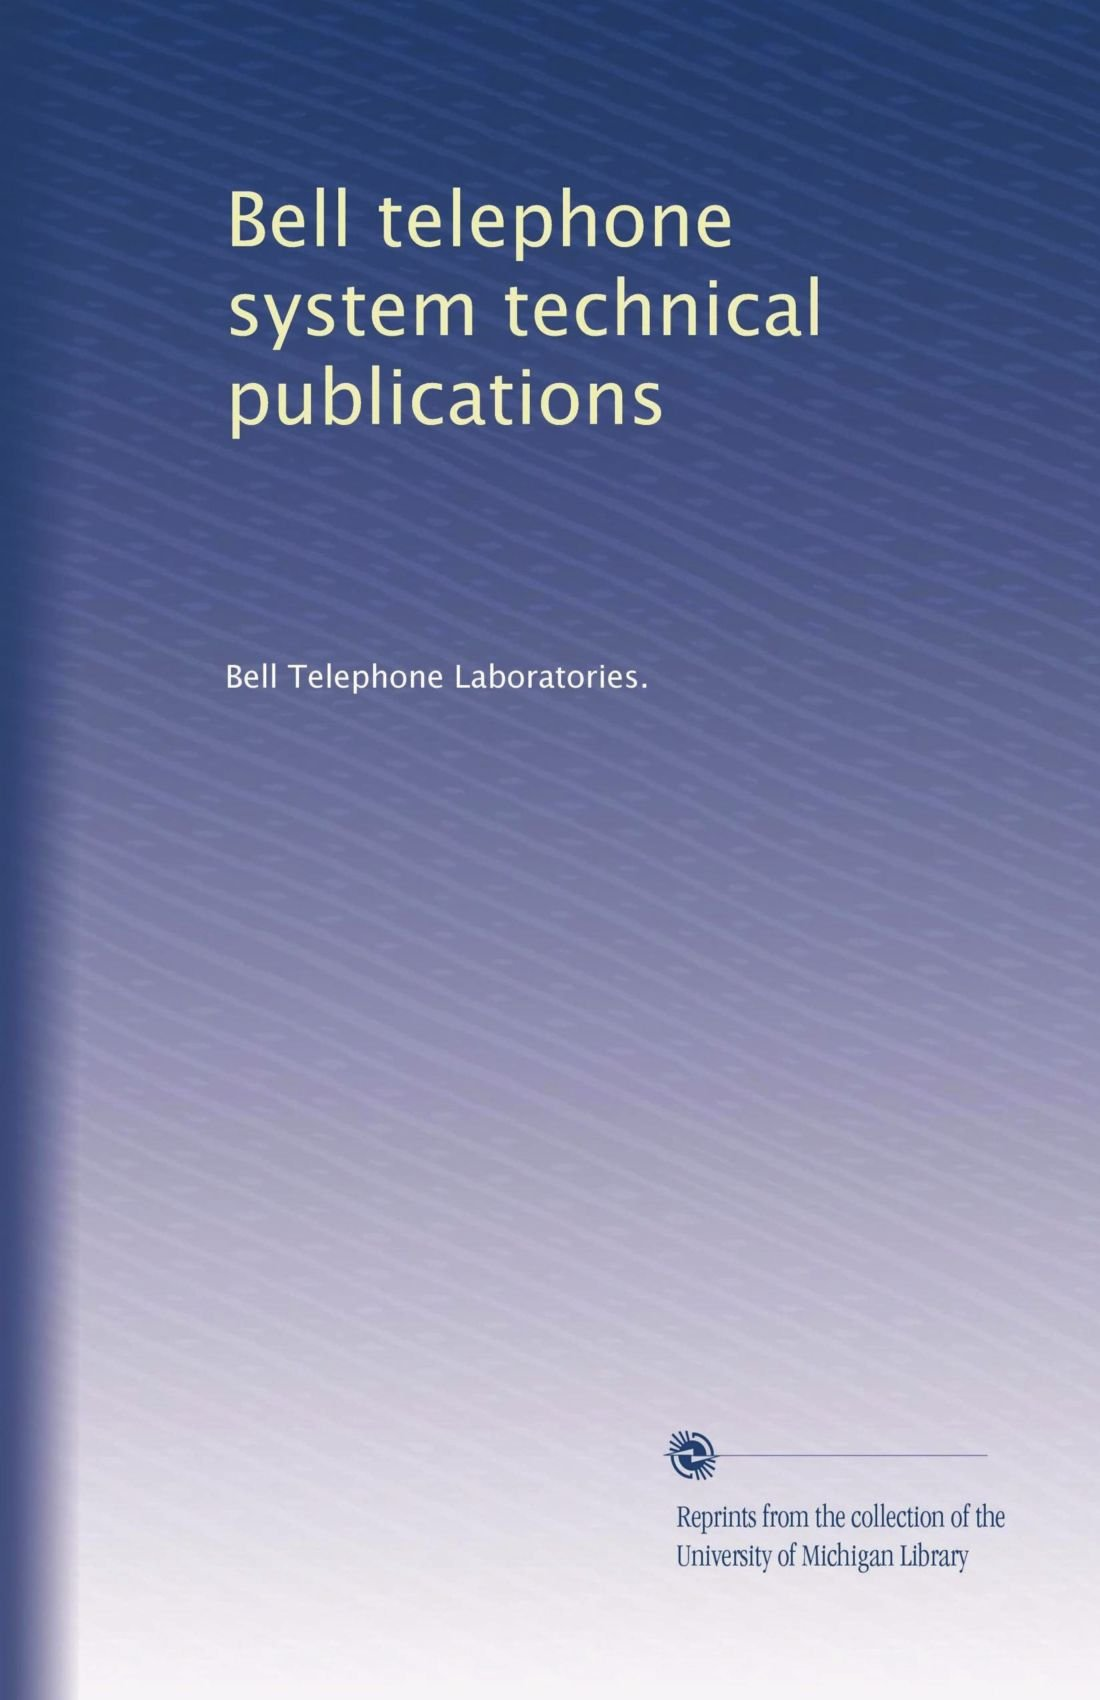 Bell telephone system technical publications (Volume 2)